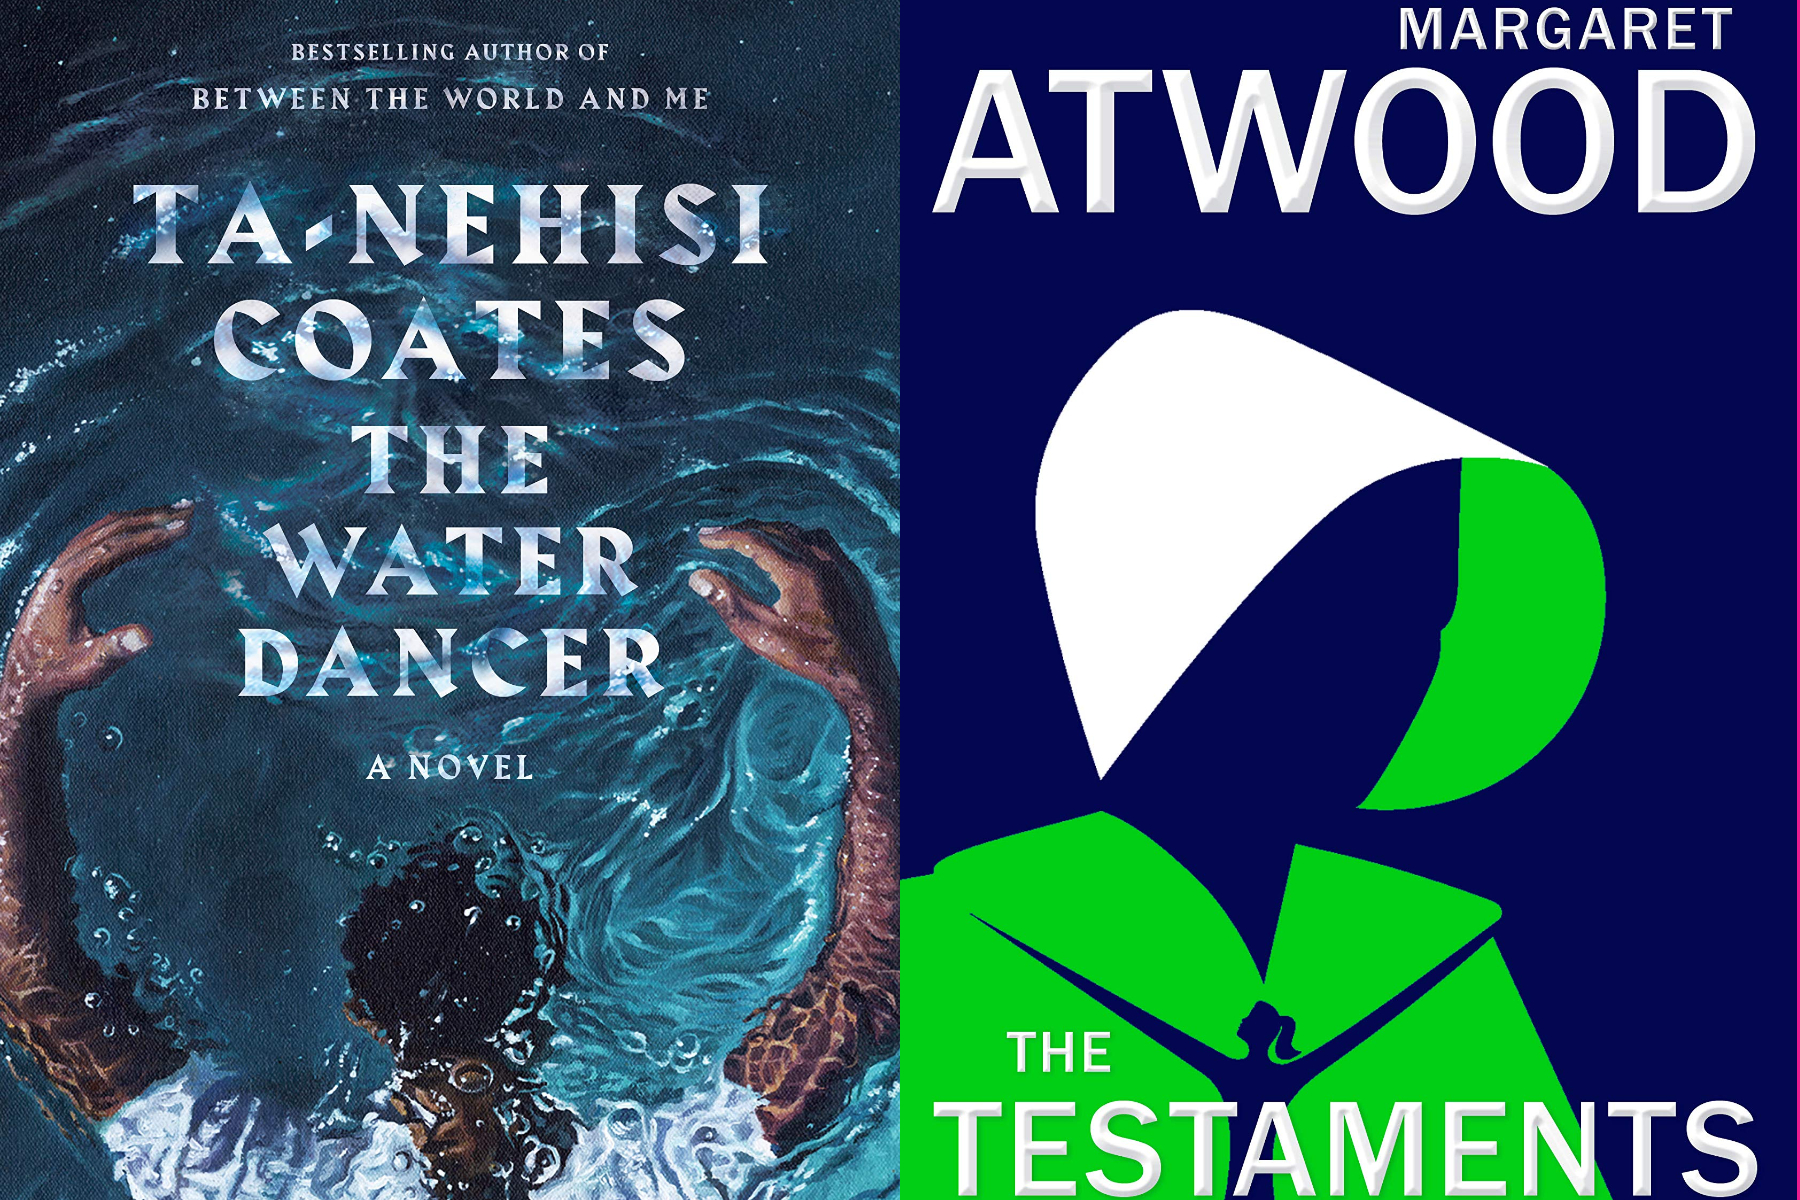 The 12 most anticipated books of the fall, according to